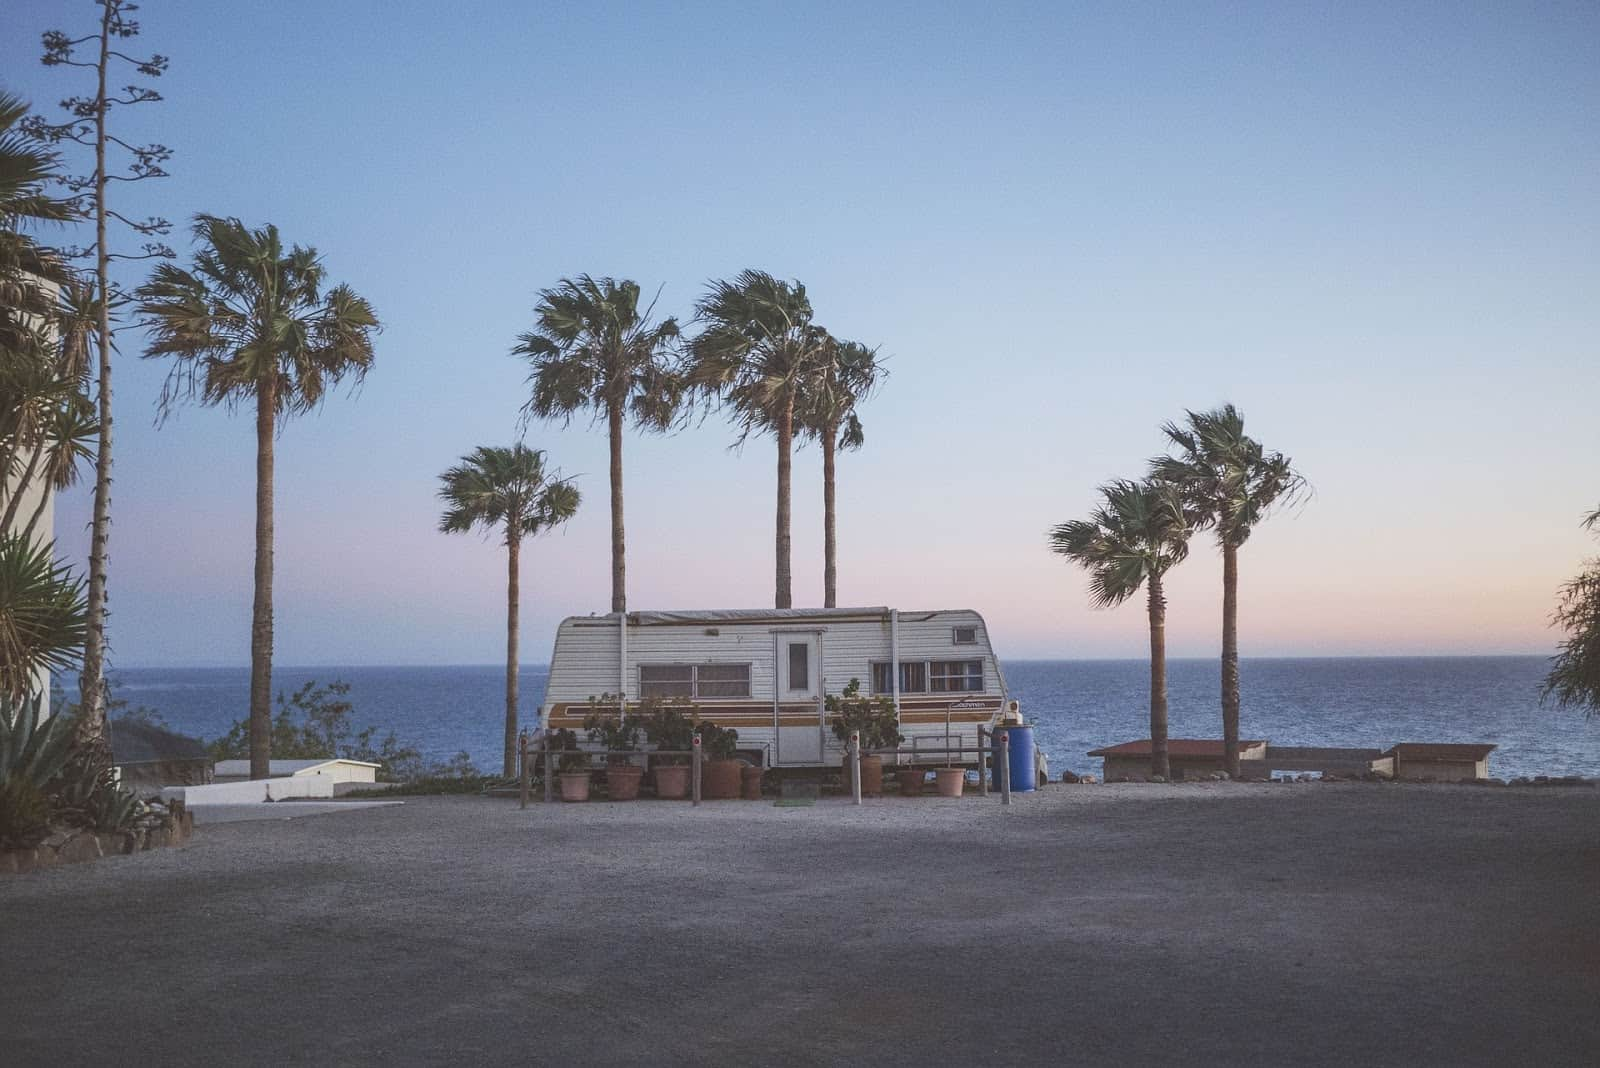 Living in RV On The Beach